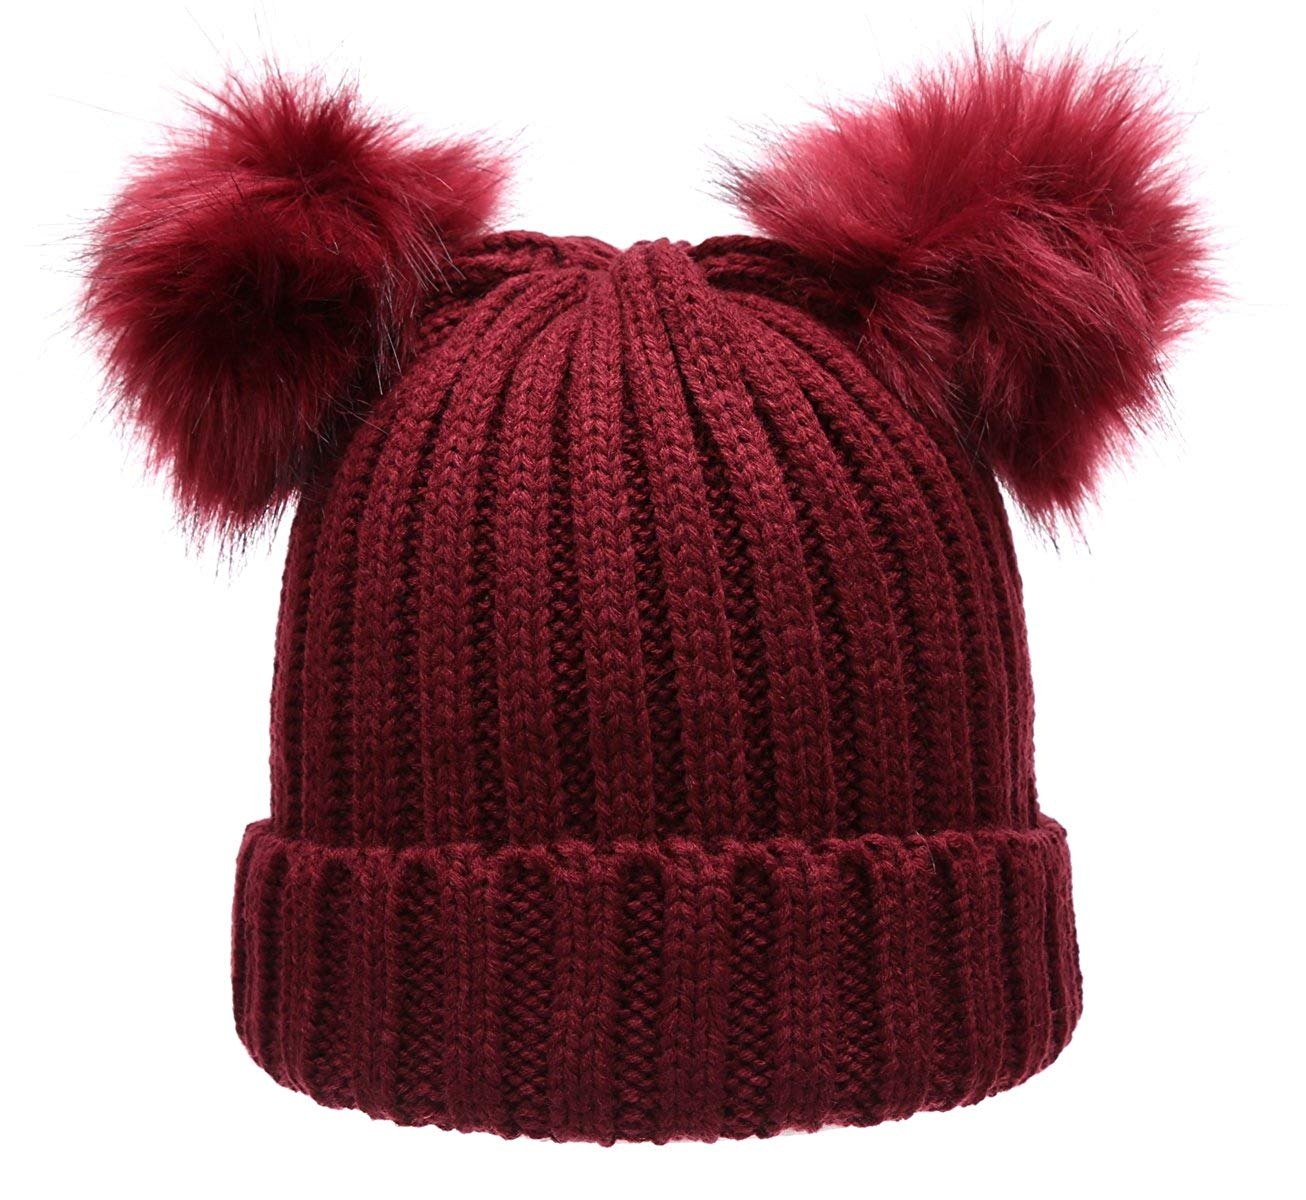 Pom Poms On Winter Hats